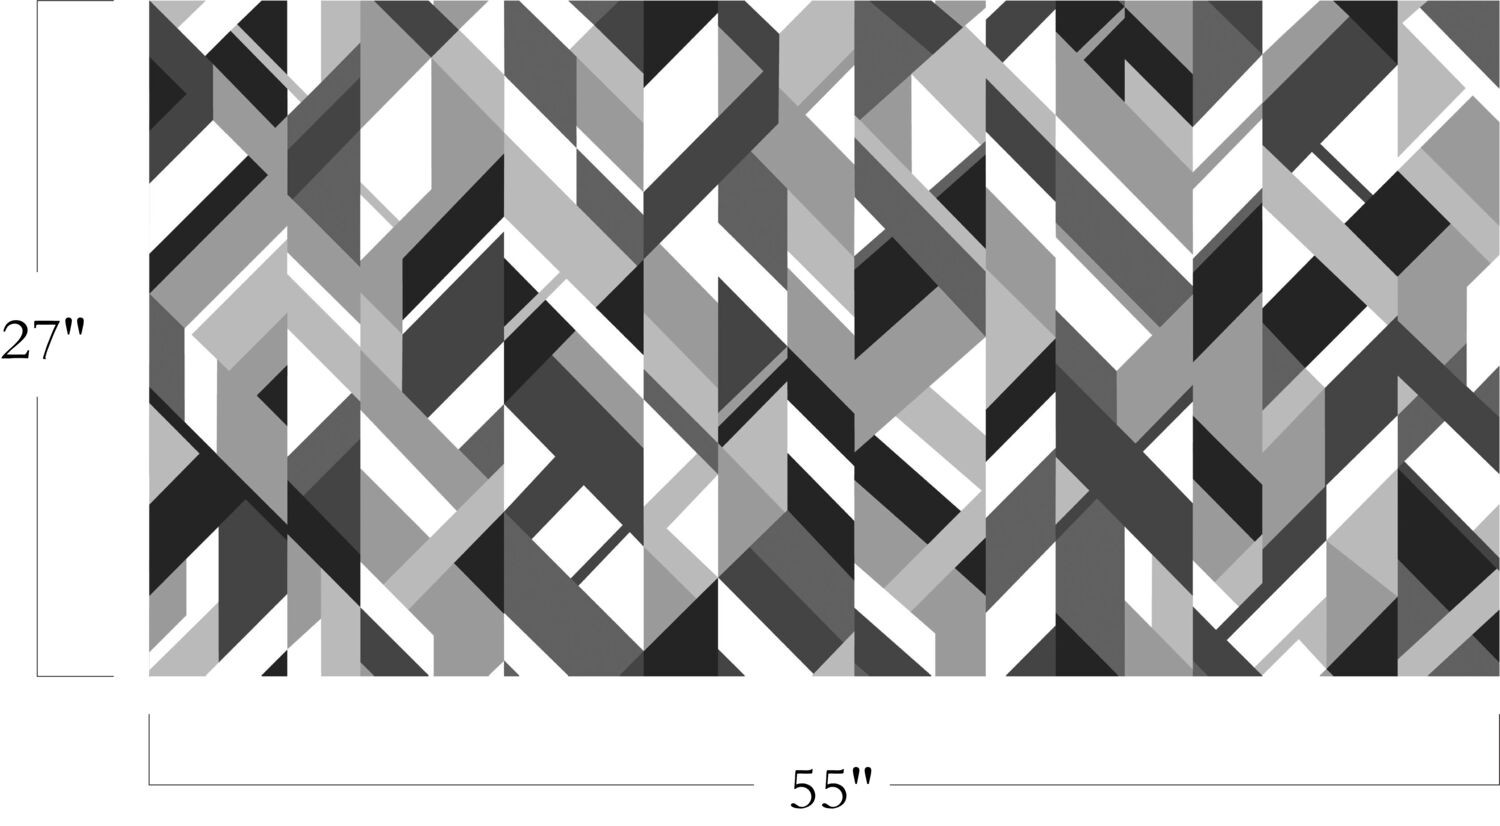 Refraction - Wavelenth - 4047 - 02 Pattern Repeat Image